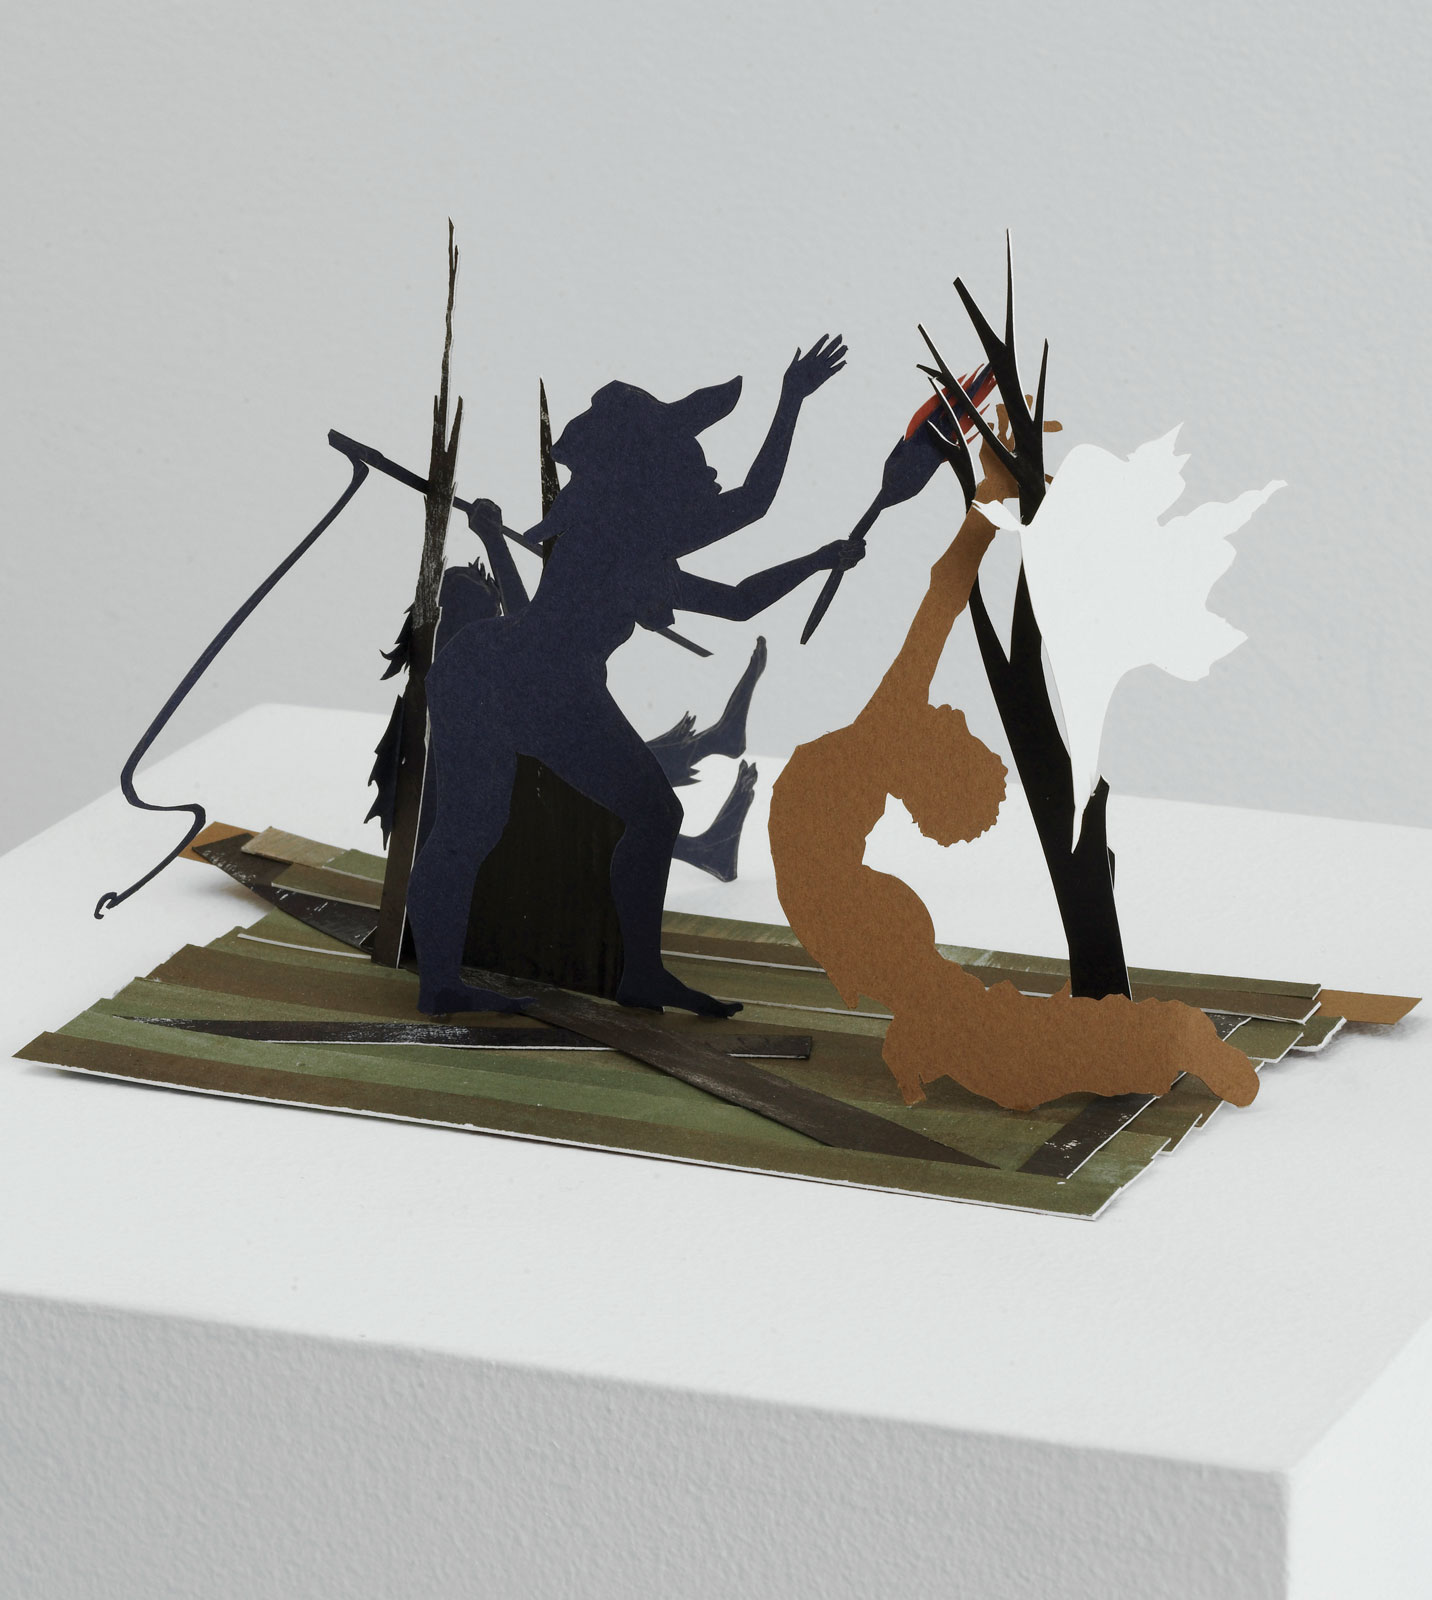 <i>Craft</i> (2009), 4.75˝ × 7.75˝ × 5.125˝, cut paper and paint